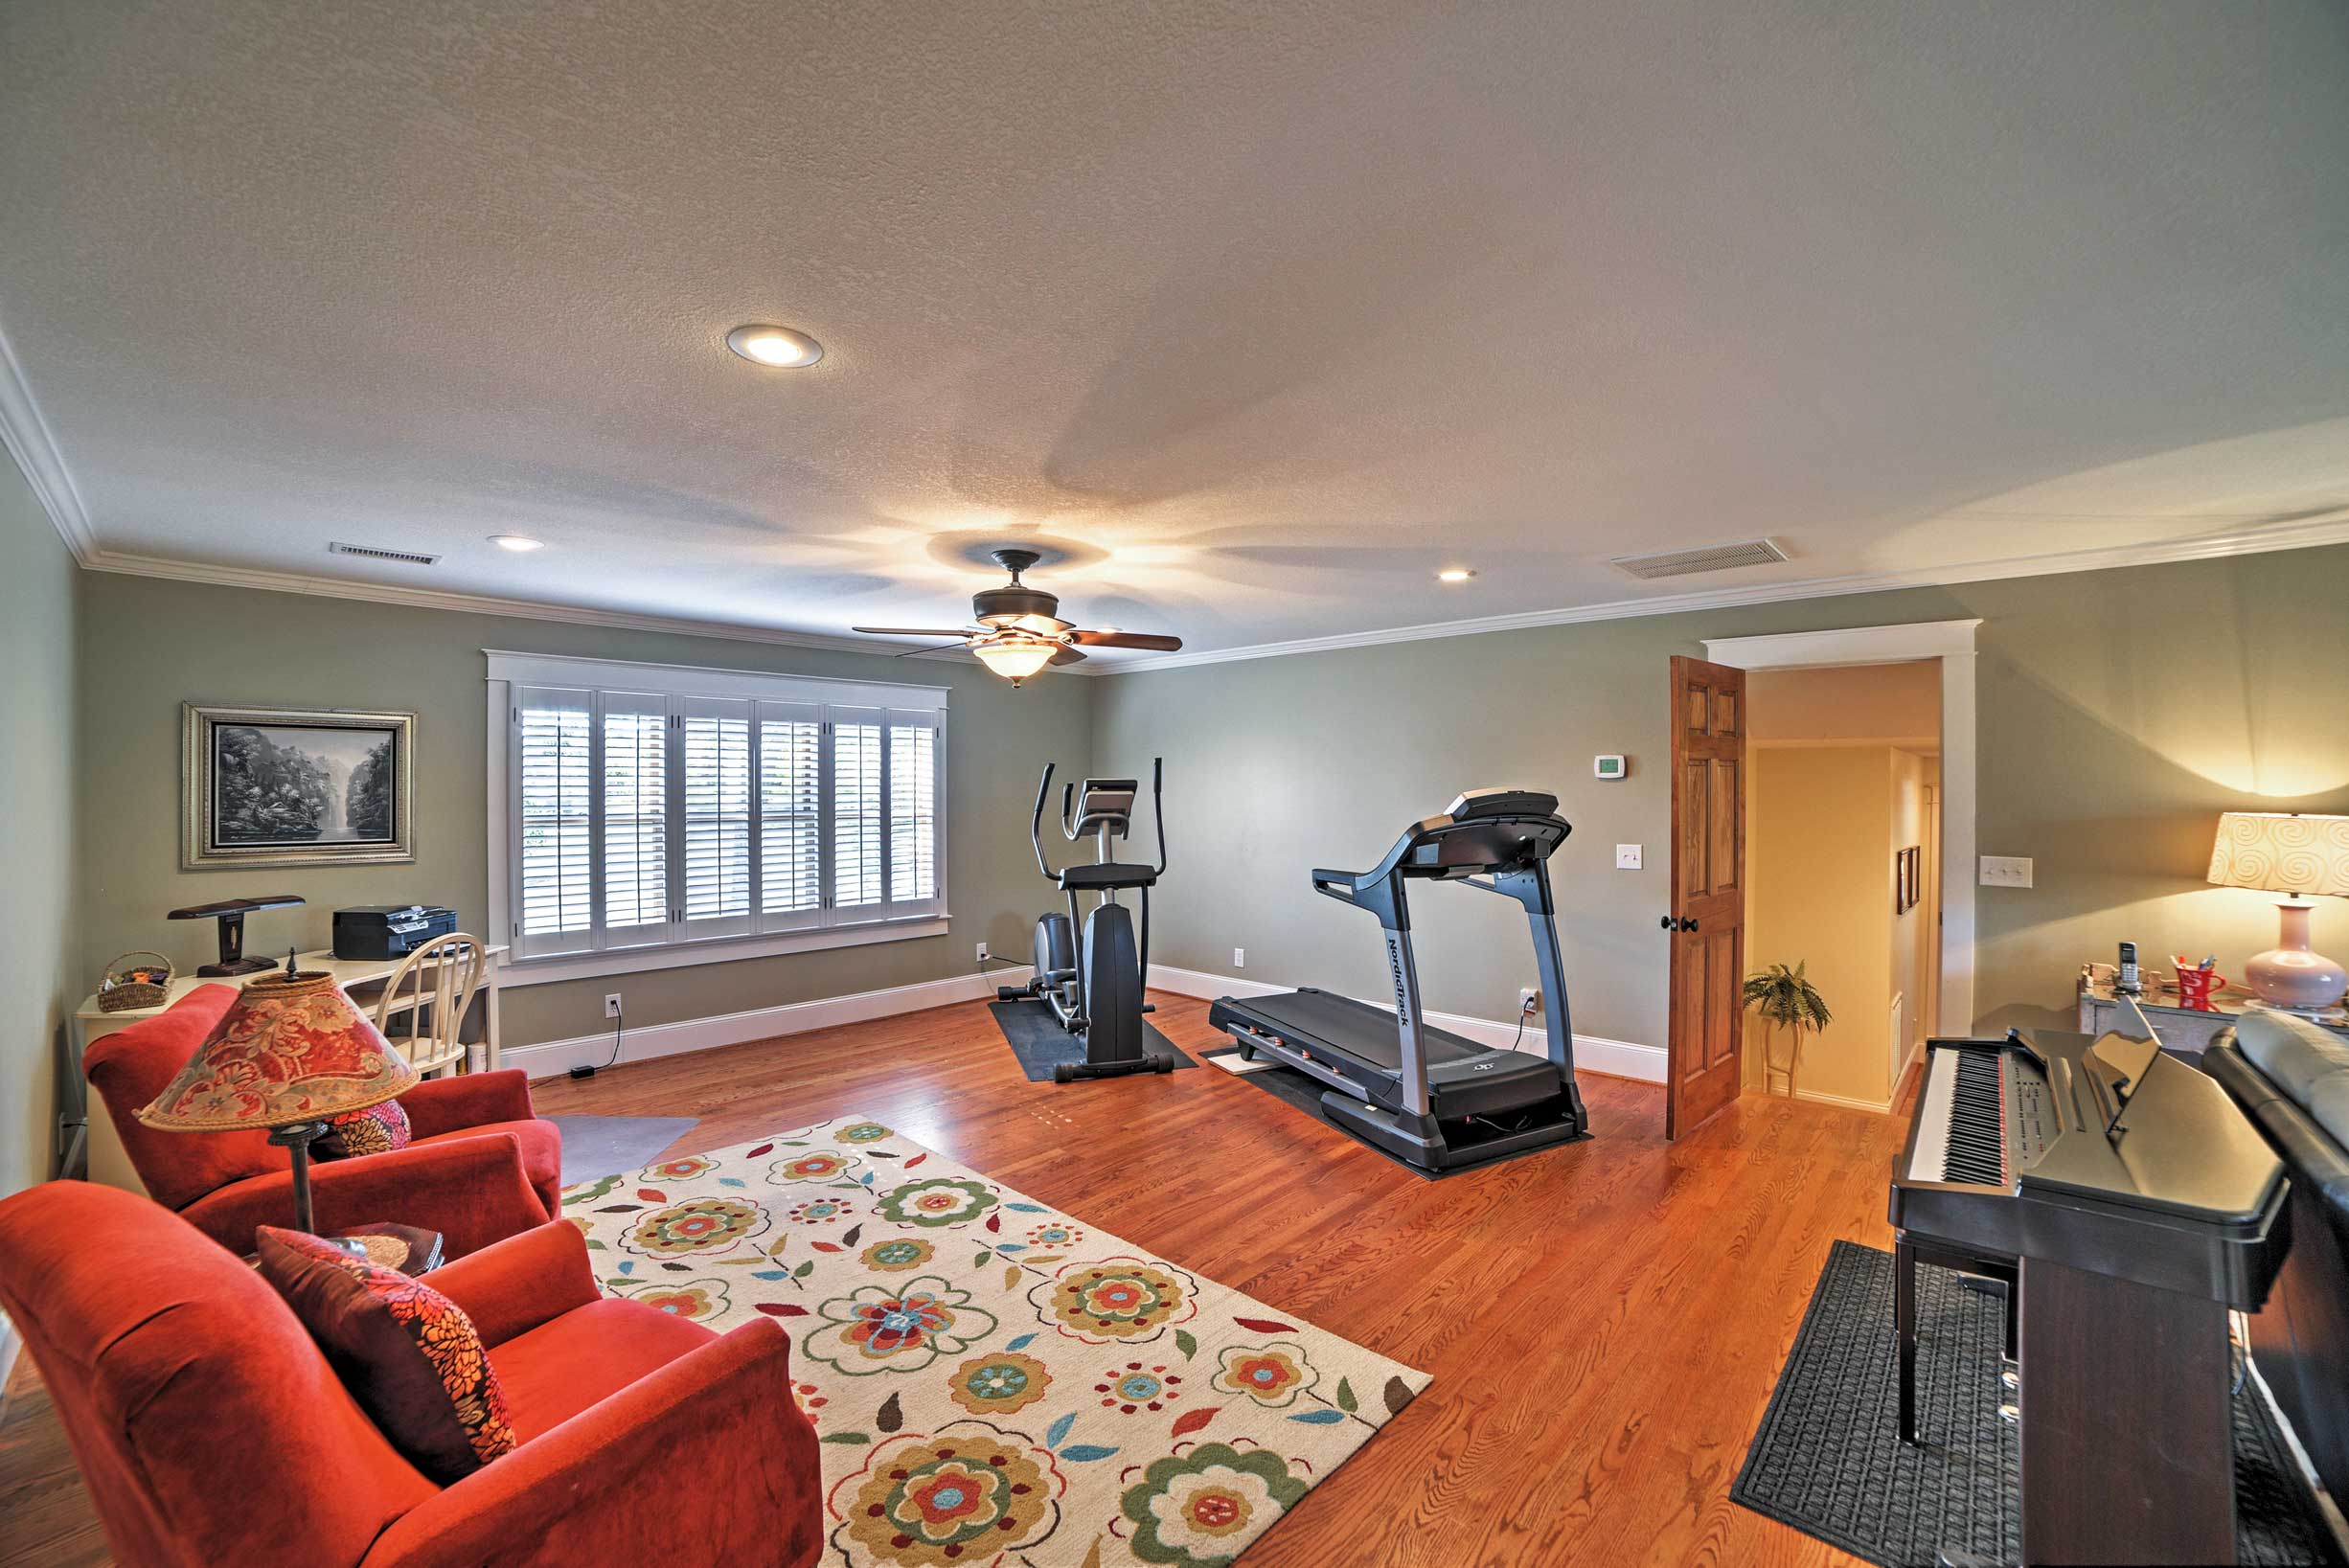 Break a sweat on the exercise equipment!